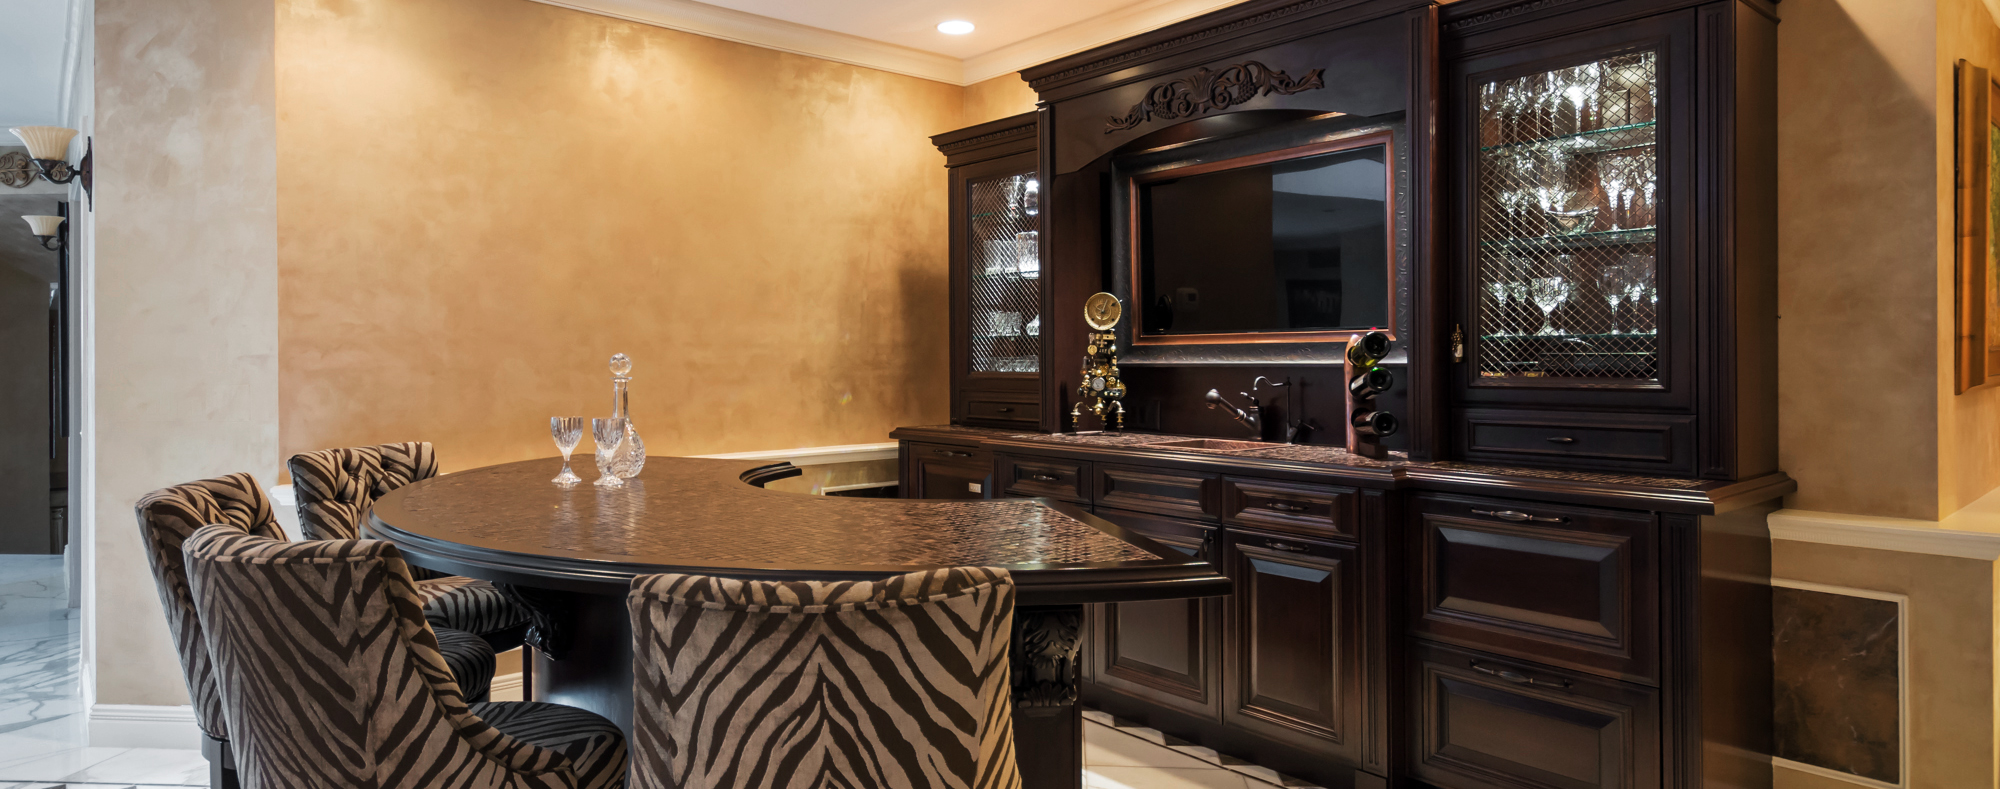 Incroyable Canyon Cabinetry U0026 Design Is One Of Tucsonu0027s Most Respected Kitchen And  Bath Remodelers. We Offer Many Fine Lines Of Cabinetry.